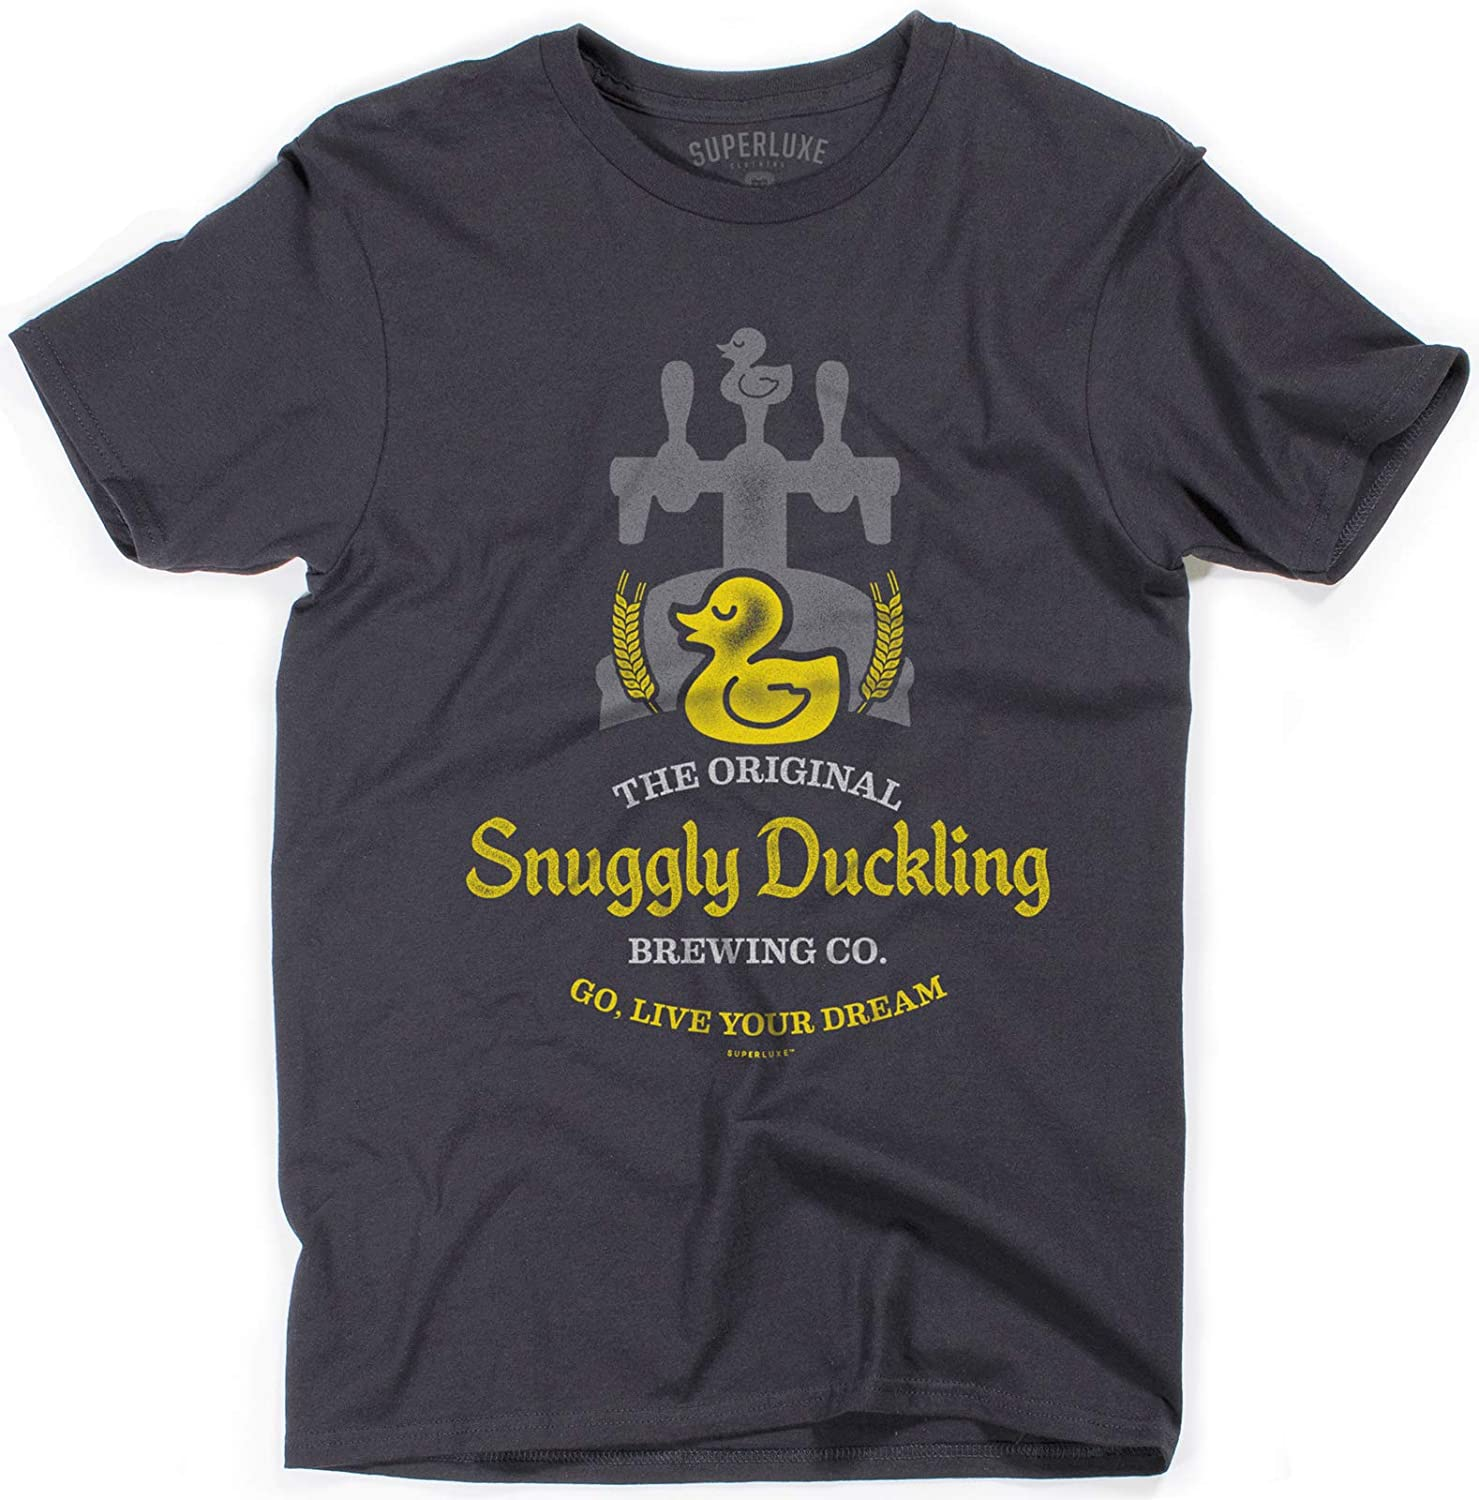 Superluxe Clothing Mens/Unisex Snuggly Duckling Brewing Company T-Shirt